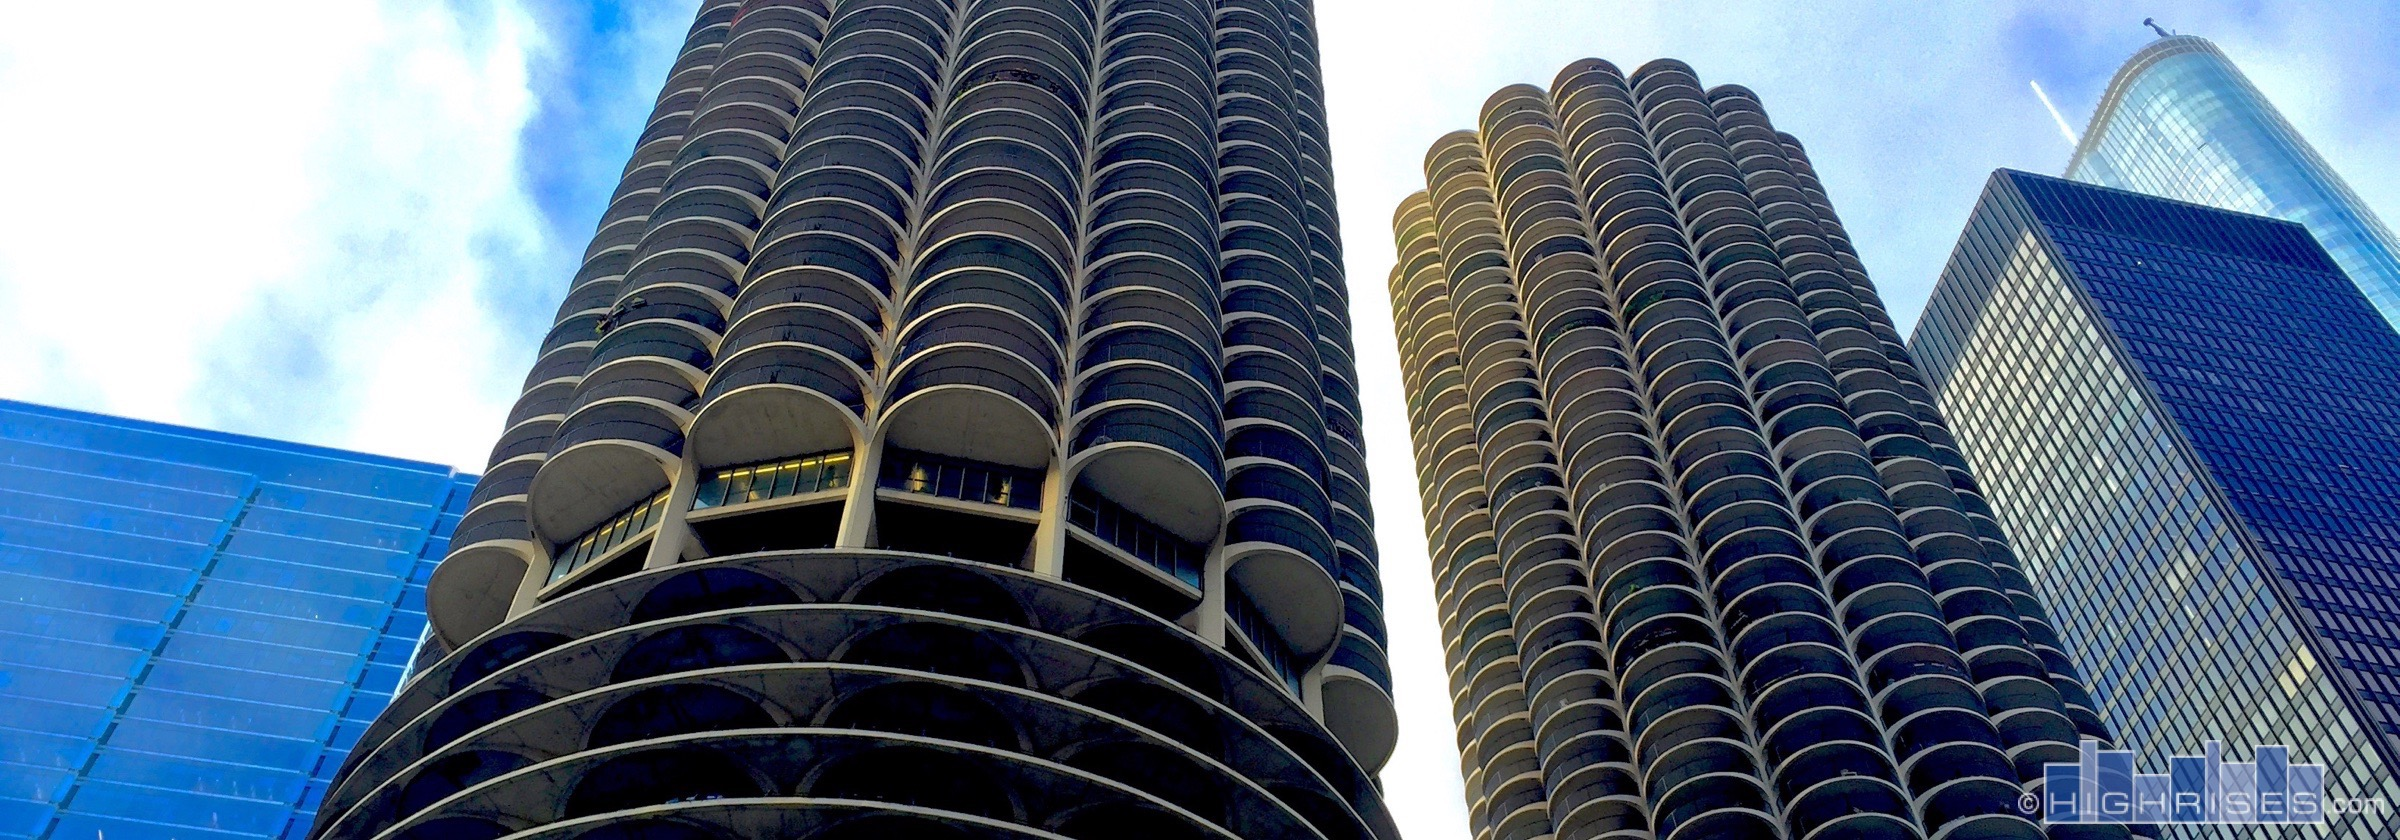 Trump Tower Apartments Marina City Condos Of Chicago Il 300 N State St